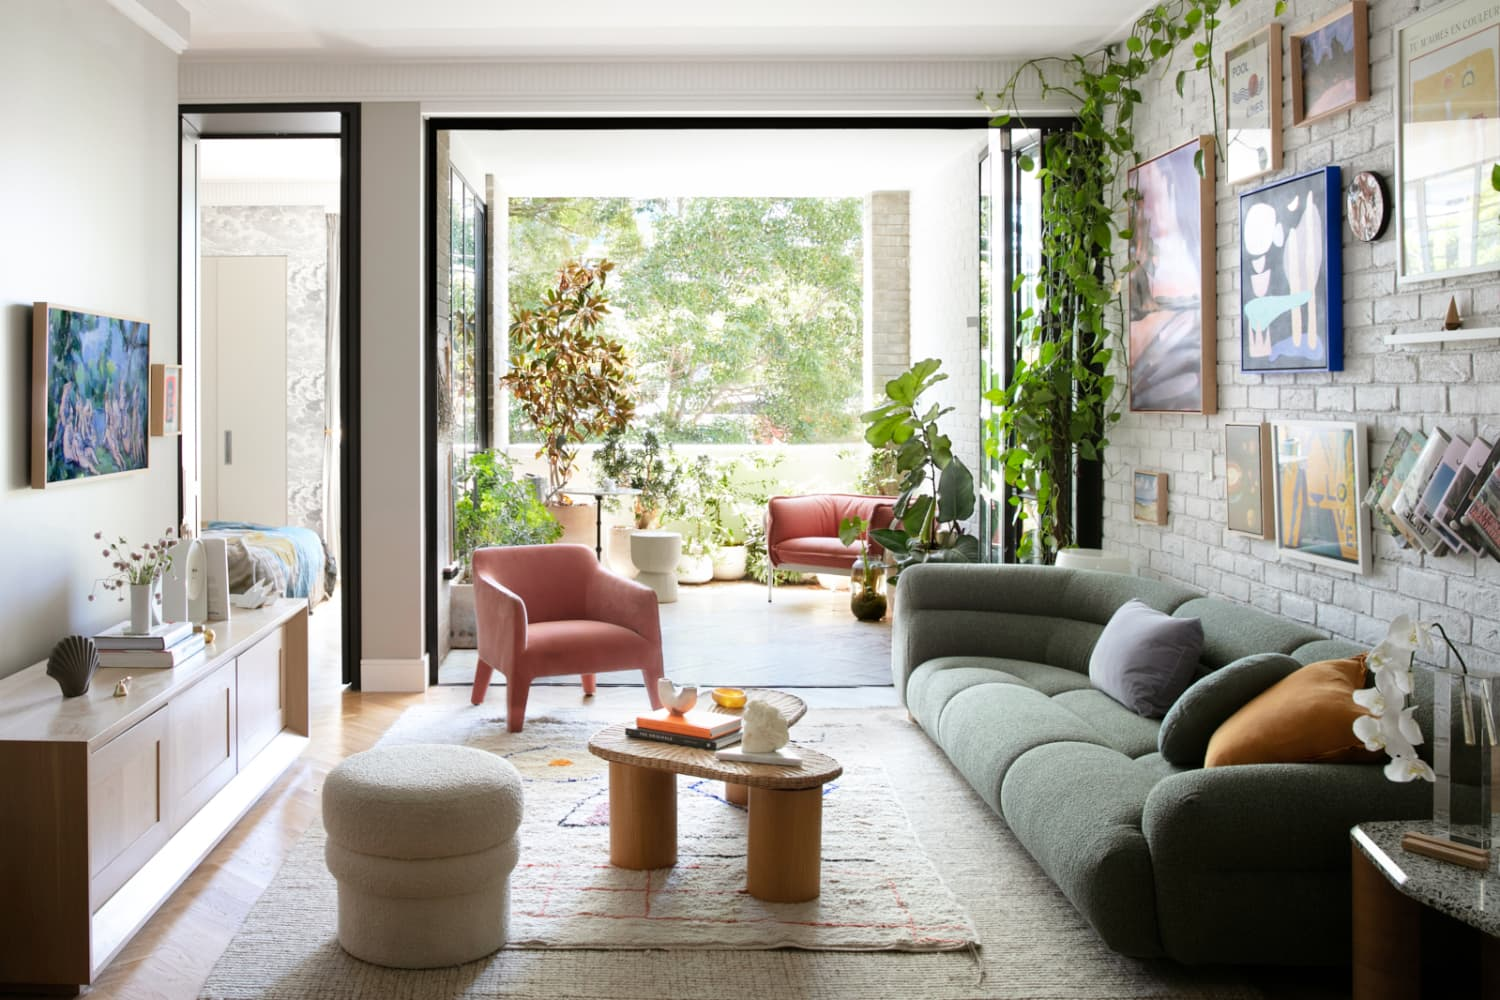 A Stylist's Chic Australian Apartment Has an Epic and Inspiring Art Gallery Wall